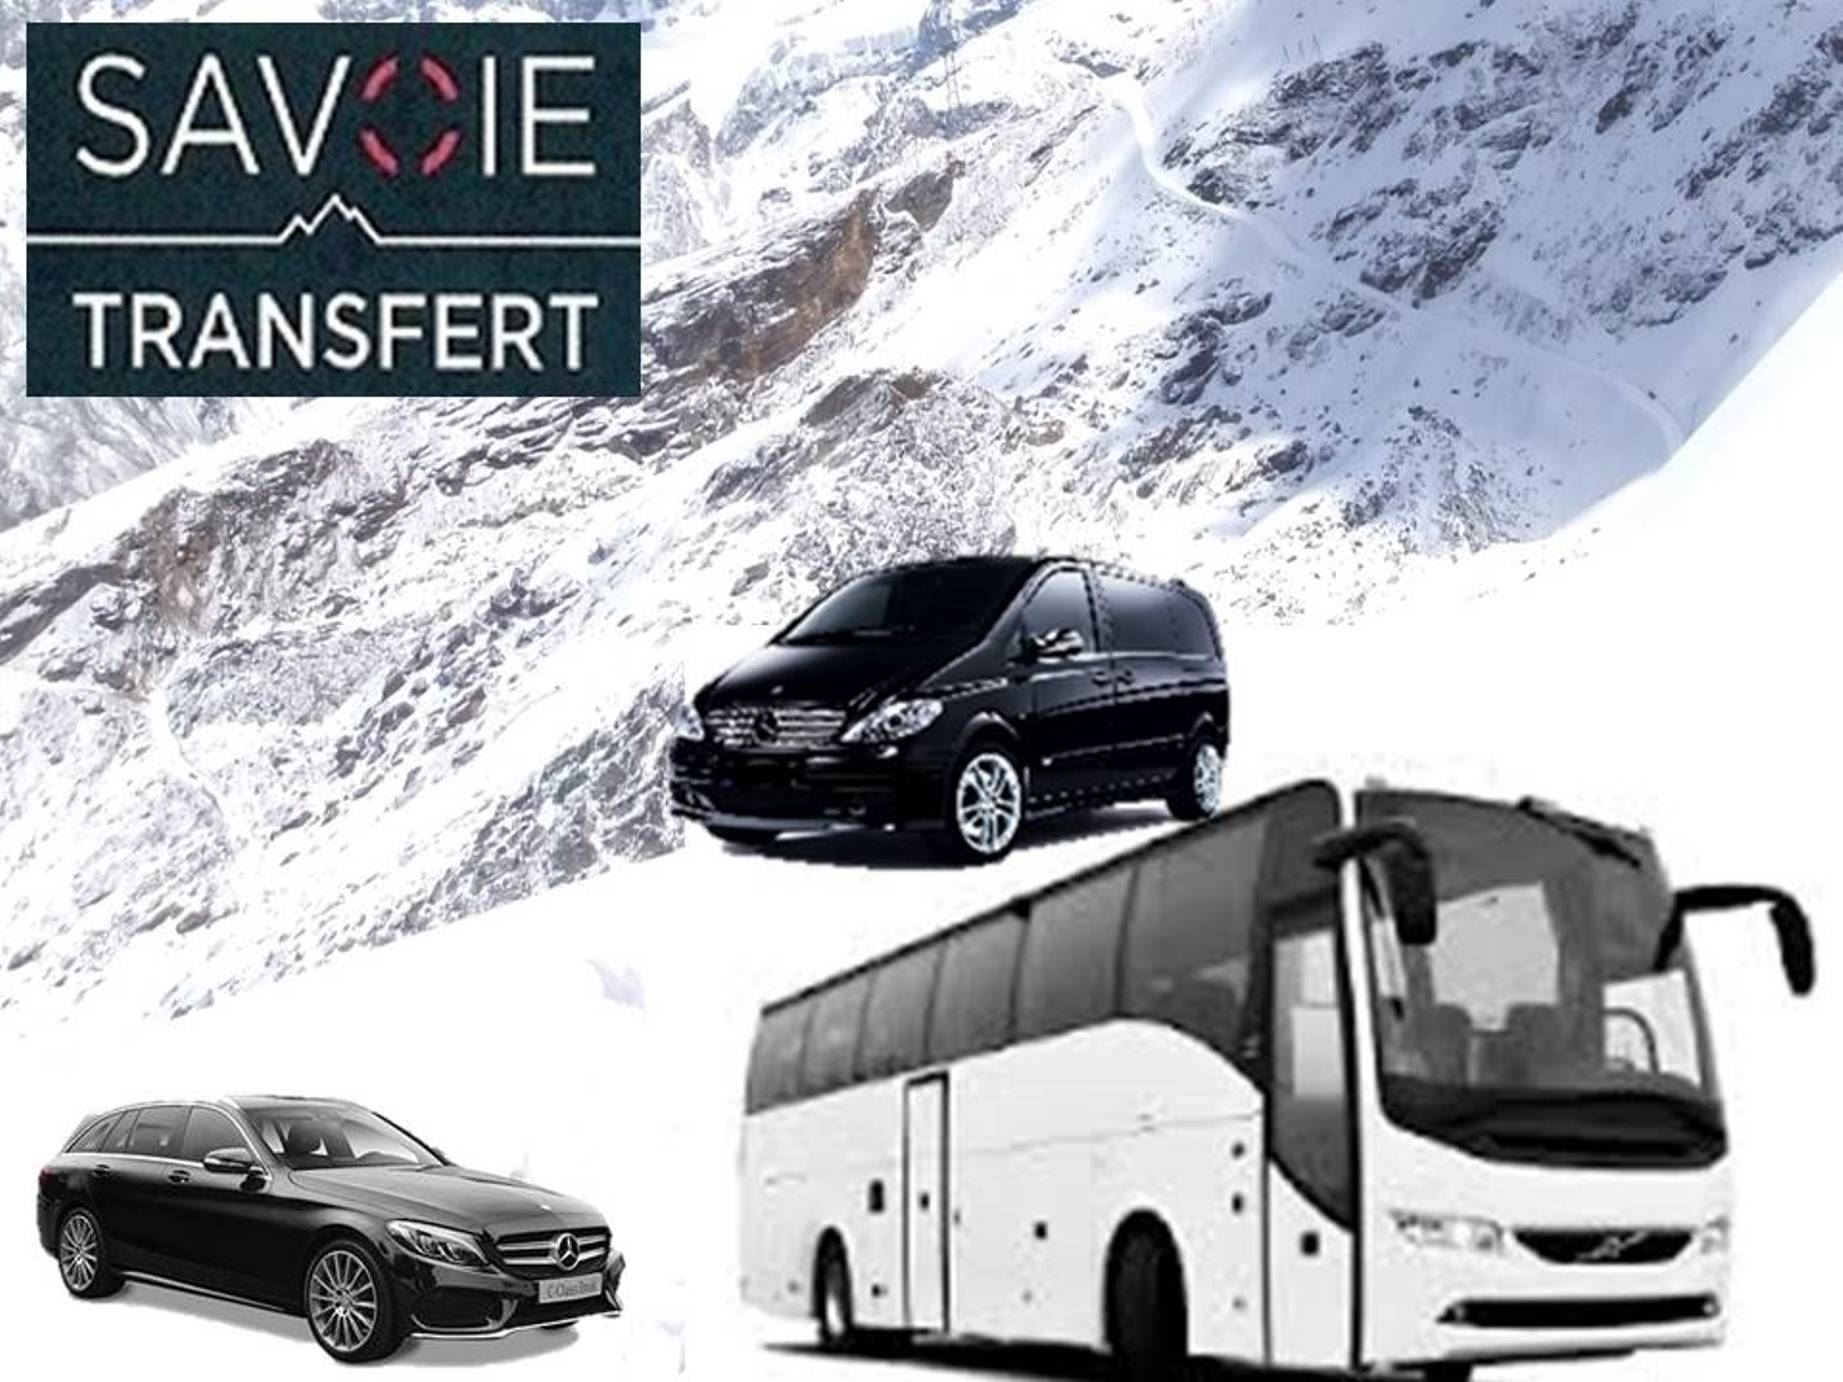 PRIVATE TRANSFER from GENEVA AIRPORT ROUND TRIP with VAL THORENS TRANSFERT